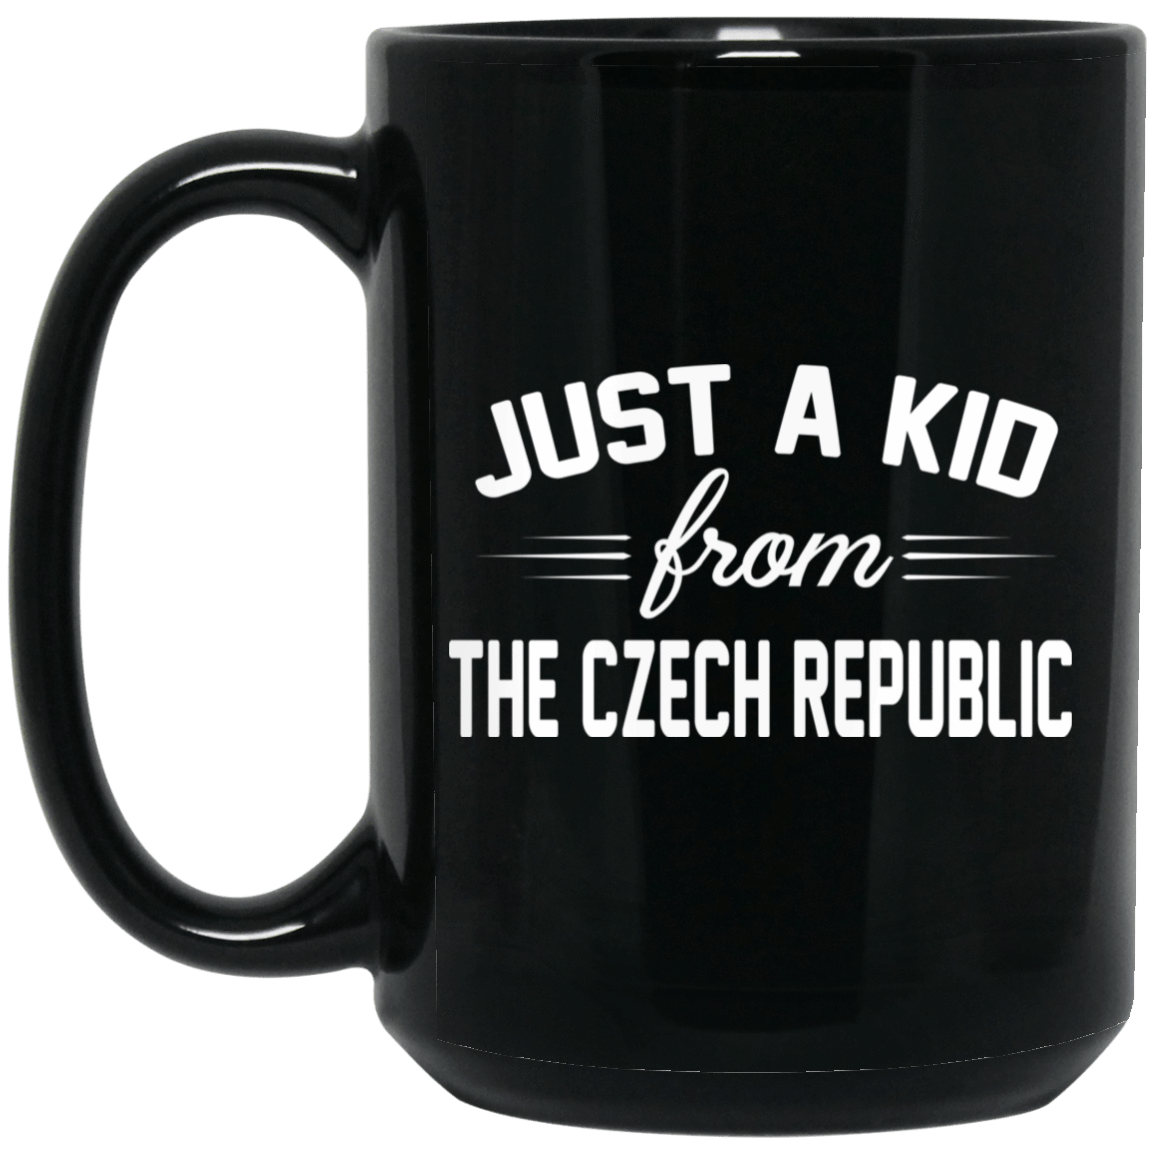 Just A Kid Store | The Czech Republic Mug 1066-10182-72111096-49311 - Tee Ript